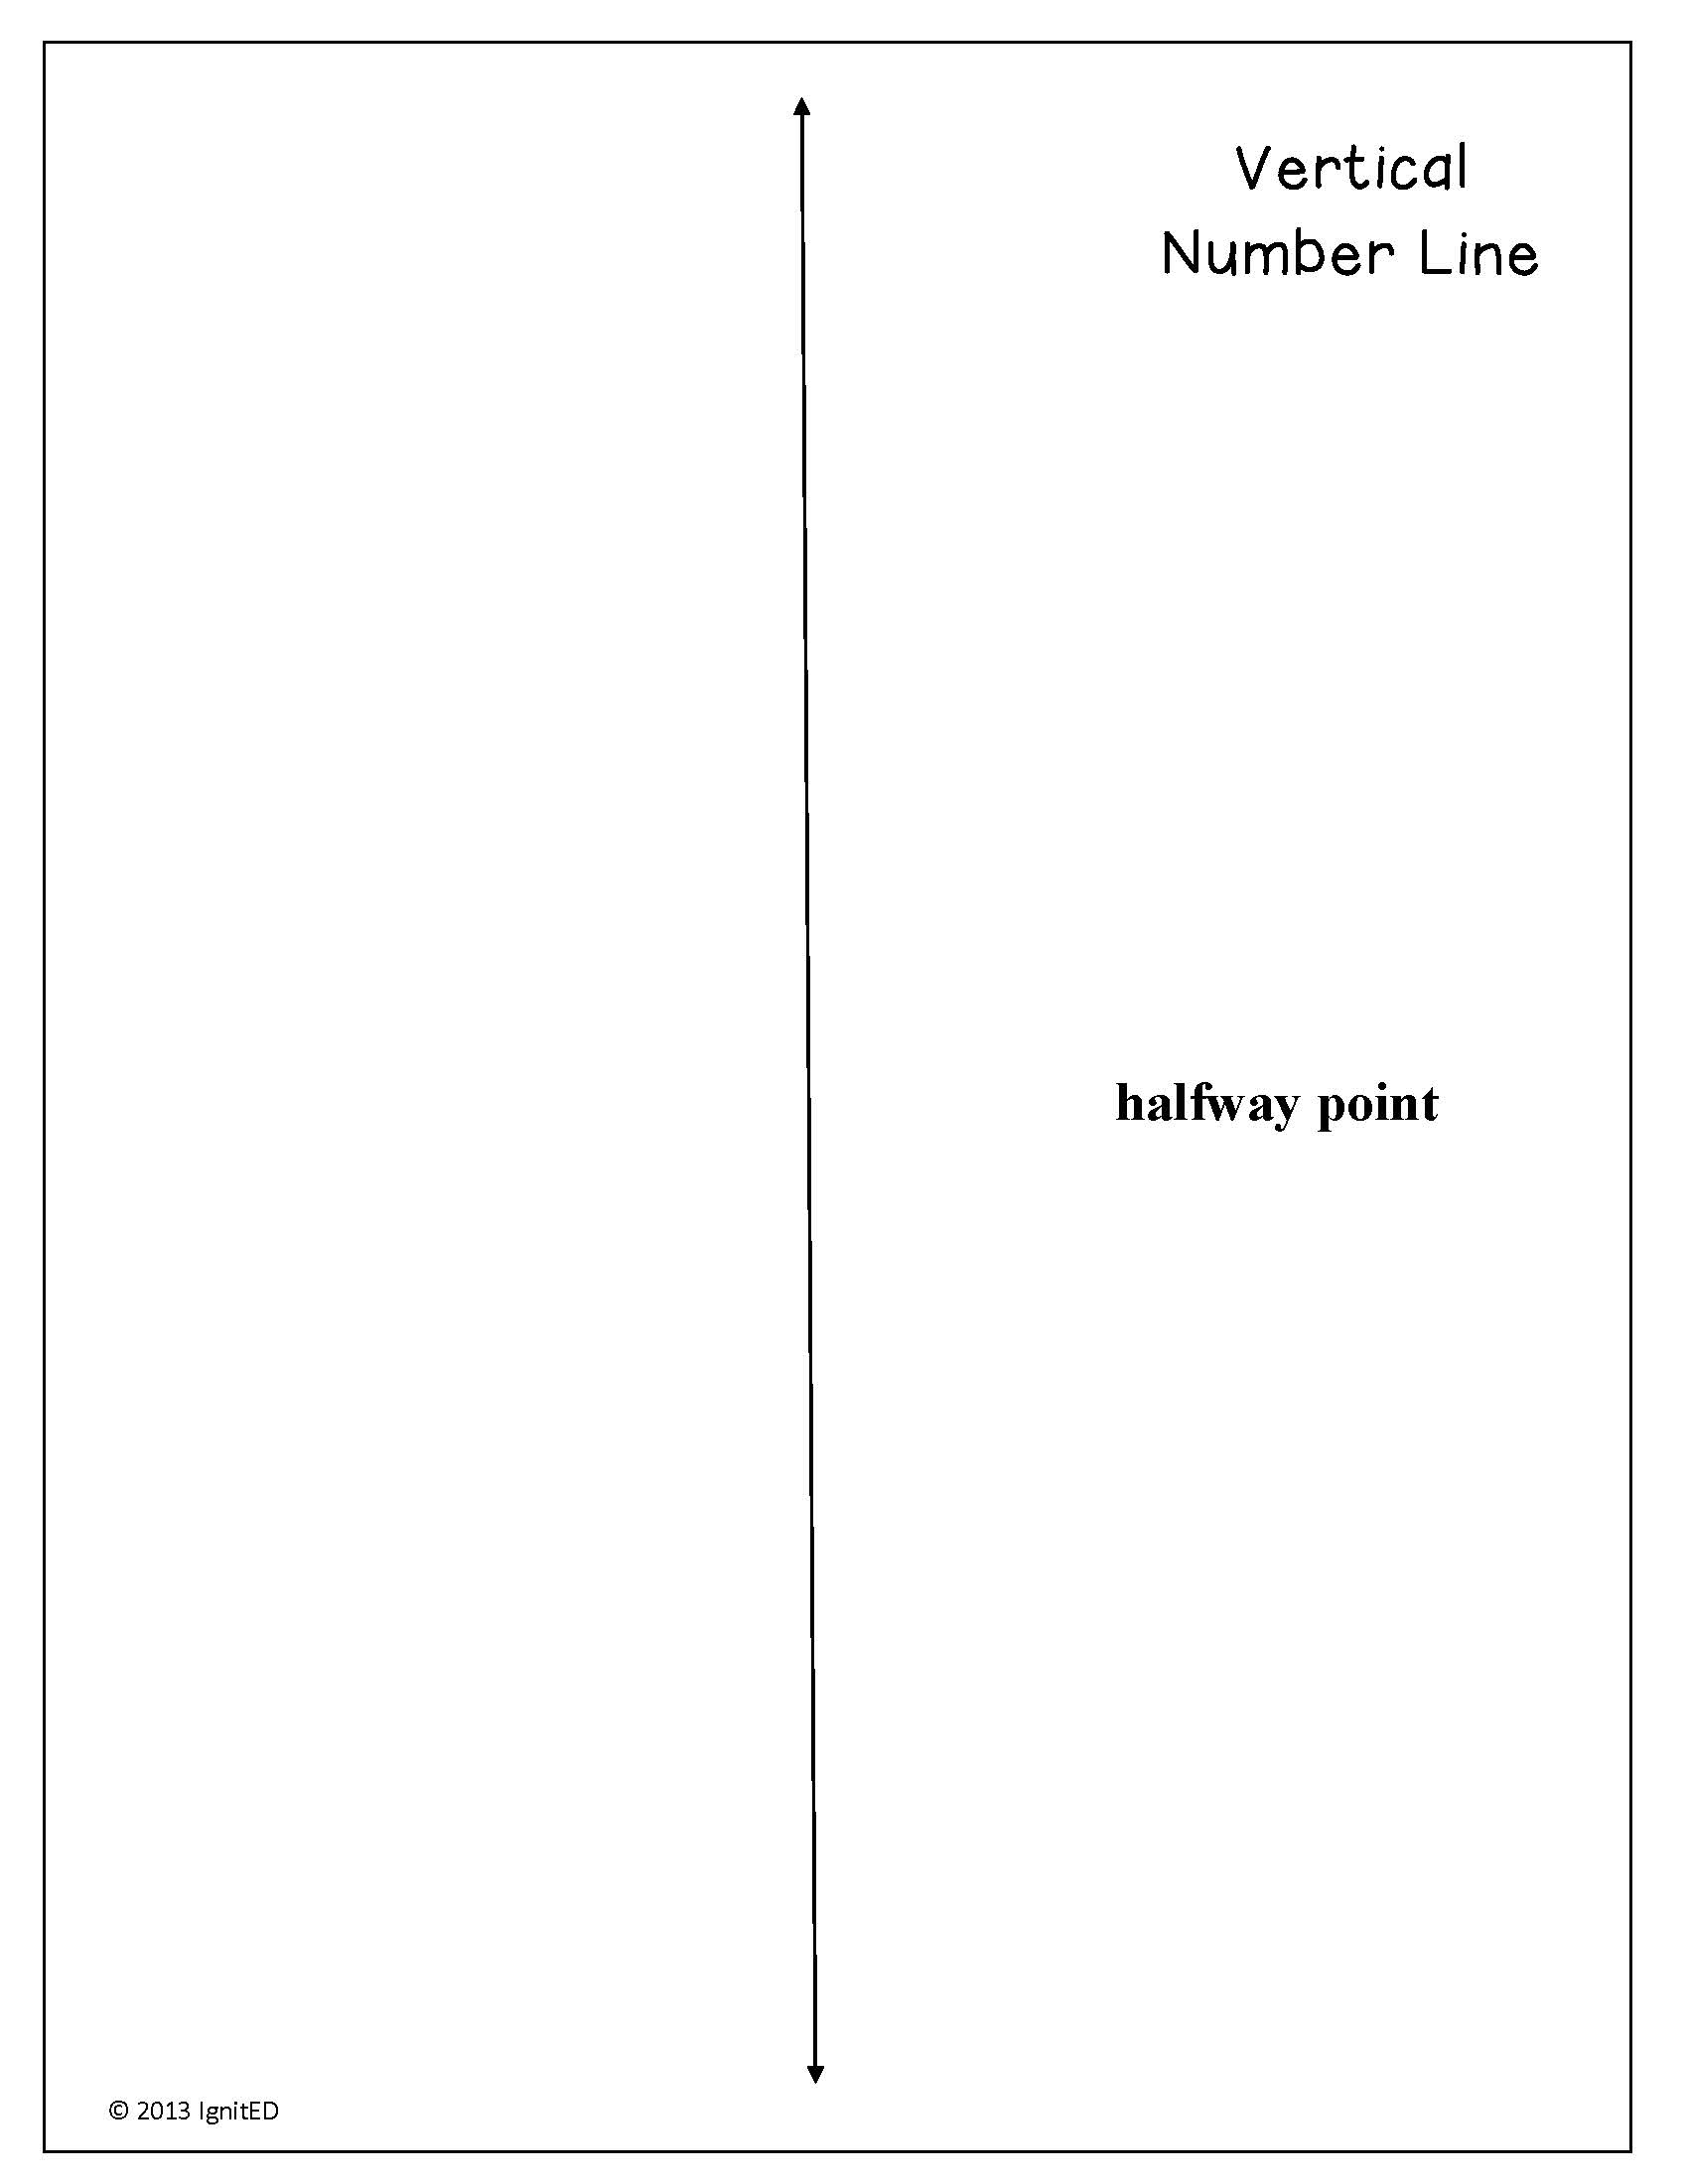 Rounding Decimals Using Vertical Number Line Worksheet